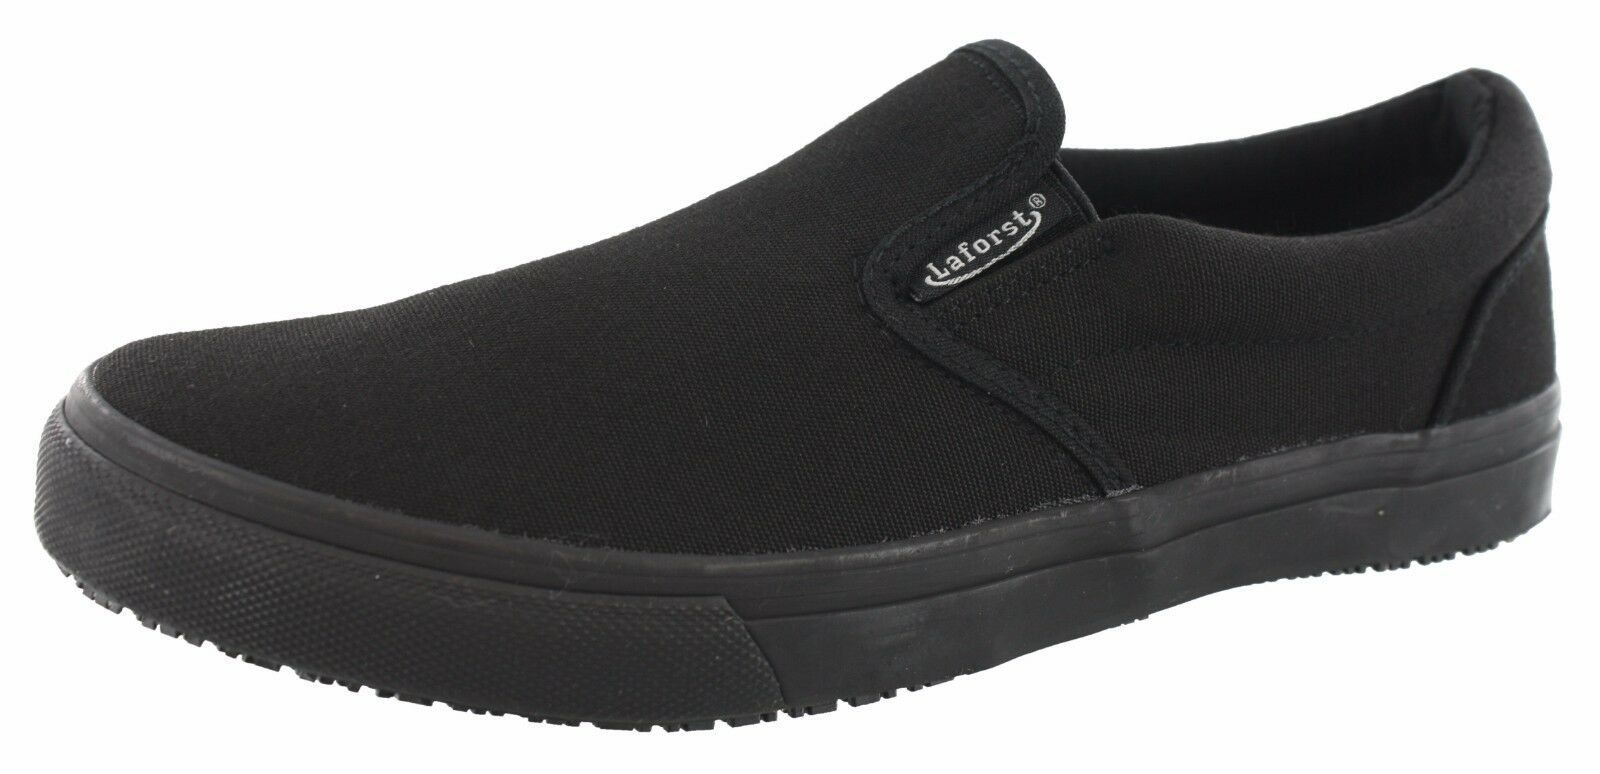 WOMENS LAFORST SANDY SLIP-ON 3319-01 SLIP RESISTANT WORKING SHOES